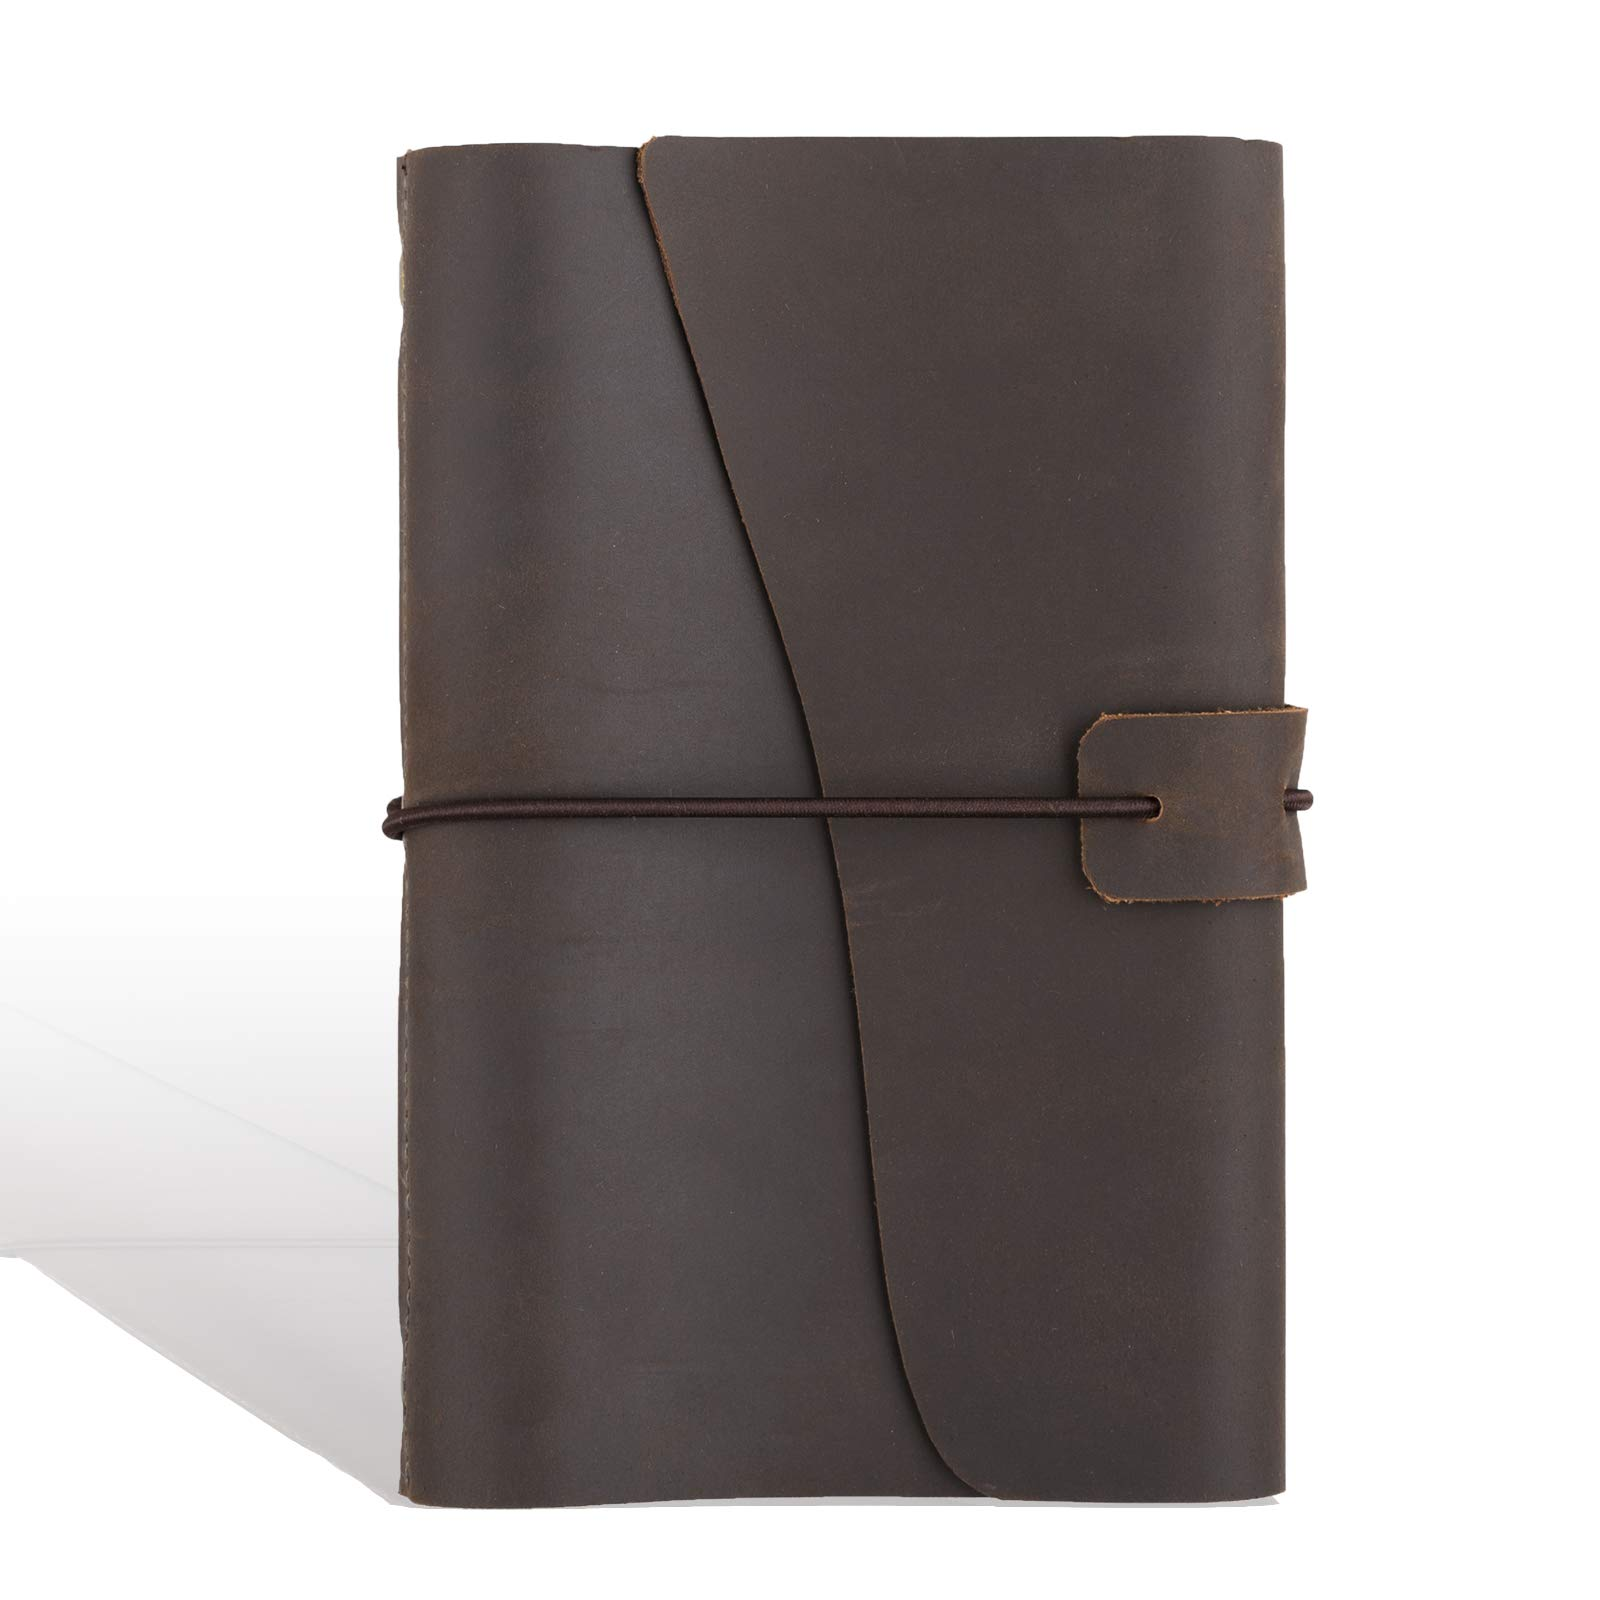 Leather Journal Refillable Notebook, with Pen Loop Writing Bound Diary Book for Men Women, Unlined Paper Handmade Genuine Leather, 160 Pages 7 x 5''